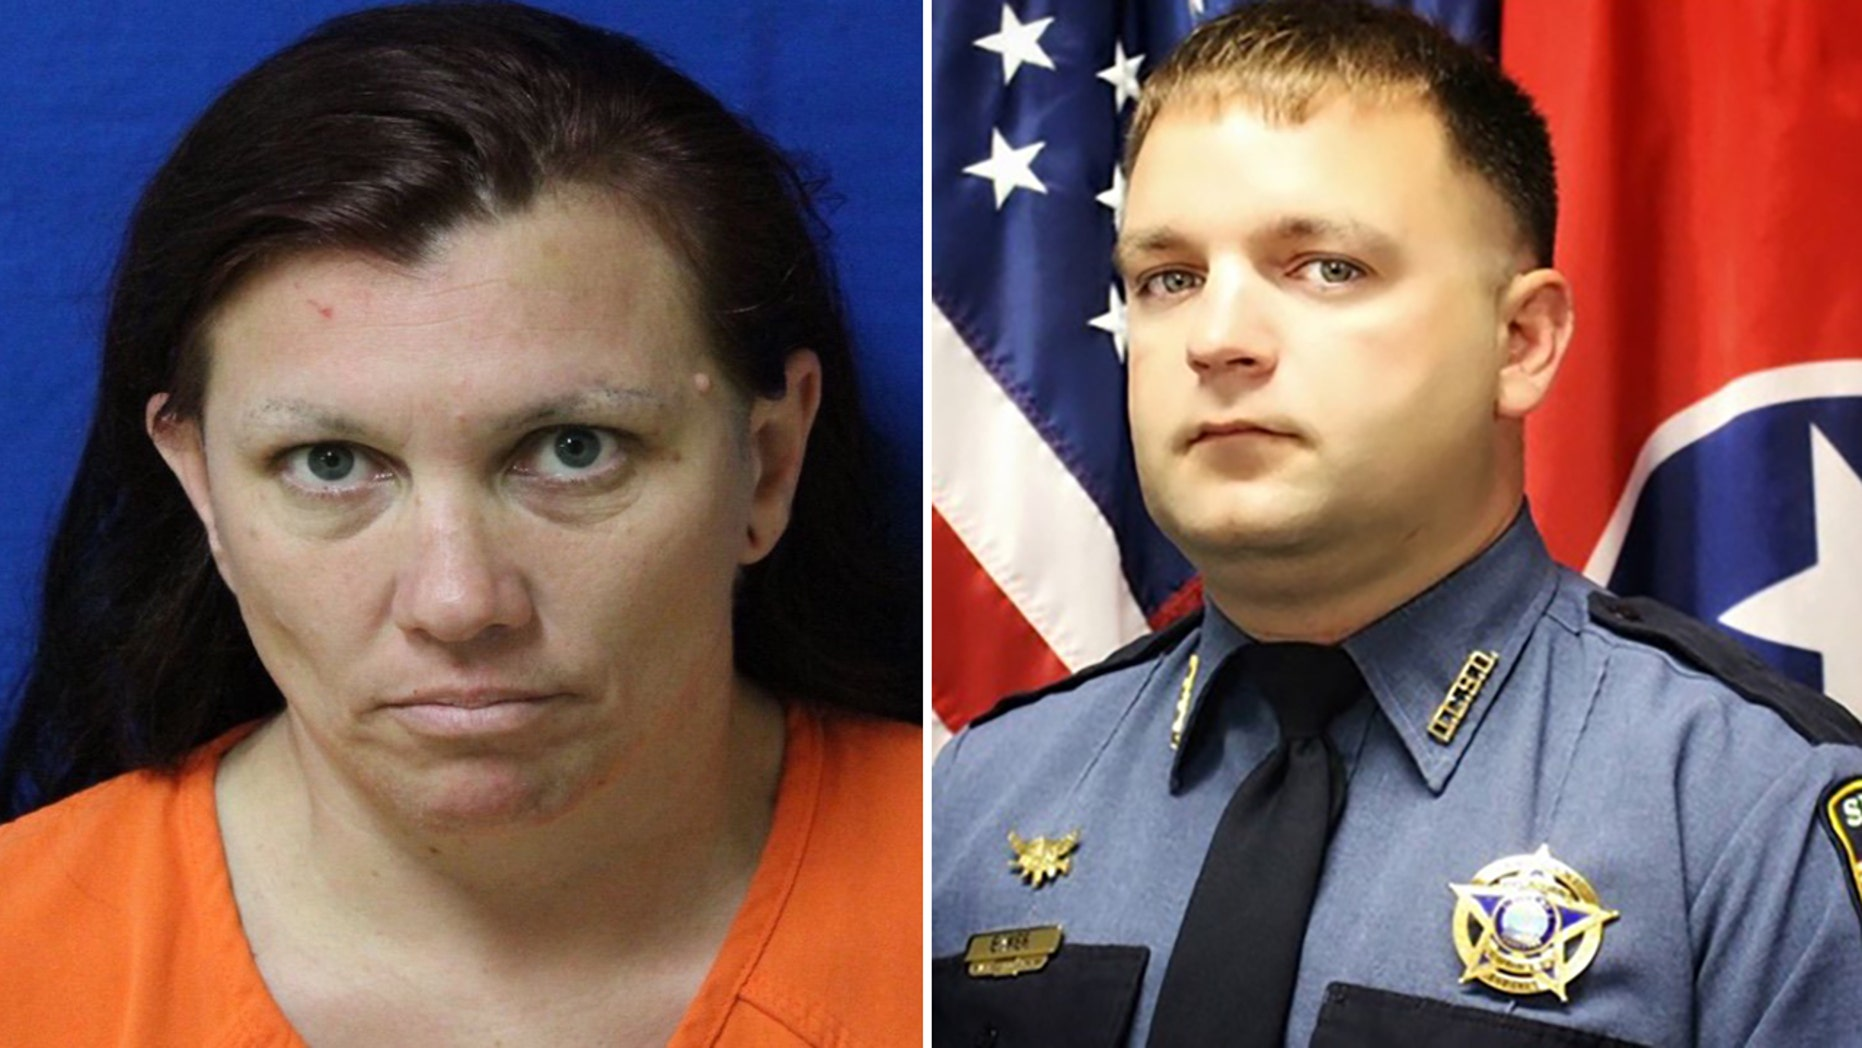 Erika Castro-Miles, 38, left, was charged in connection with the death of Tennessee sheriff's deputy Sgt. Daniel Baker, right, late Wednesday, officials said.